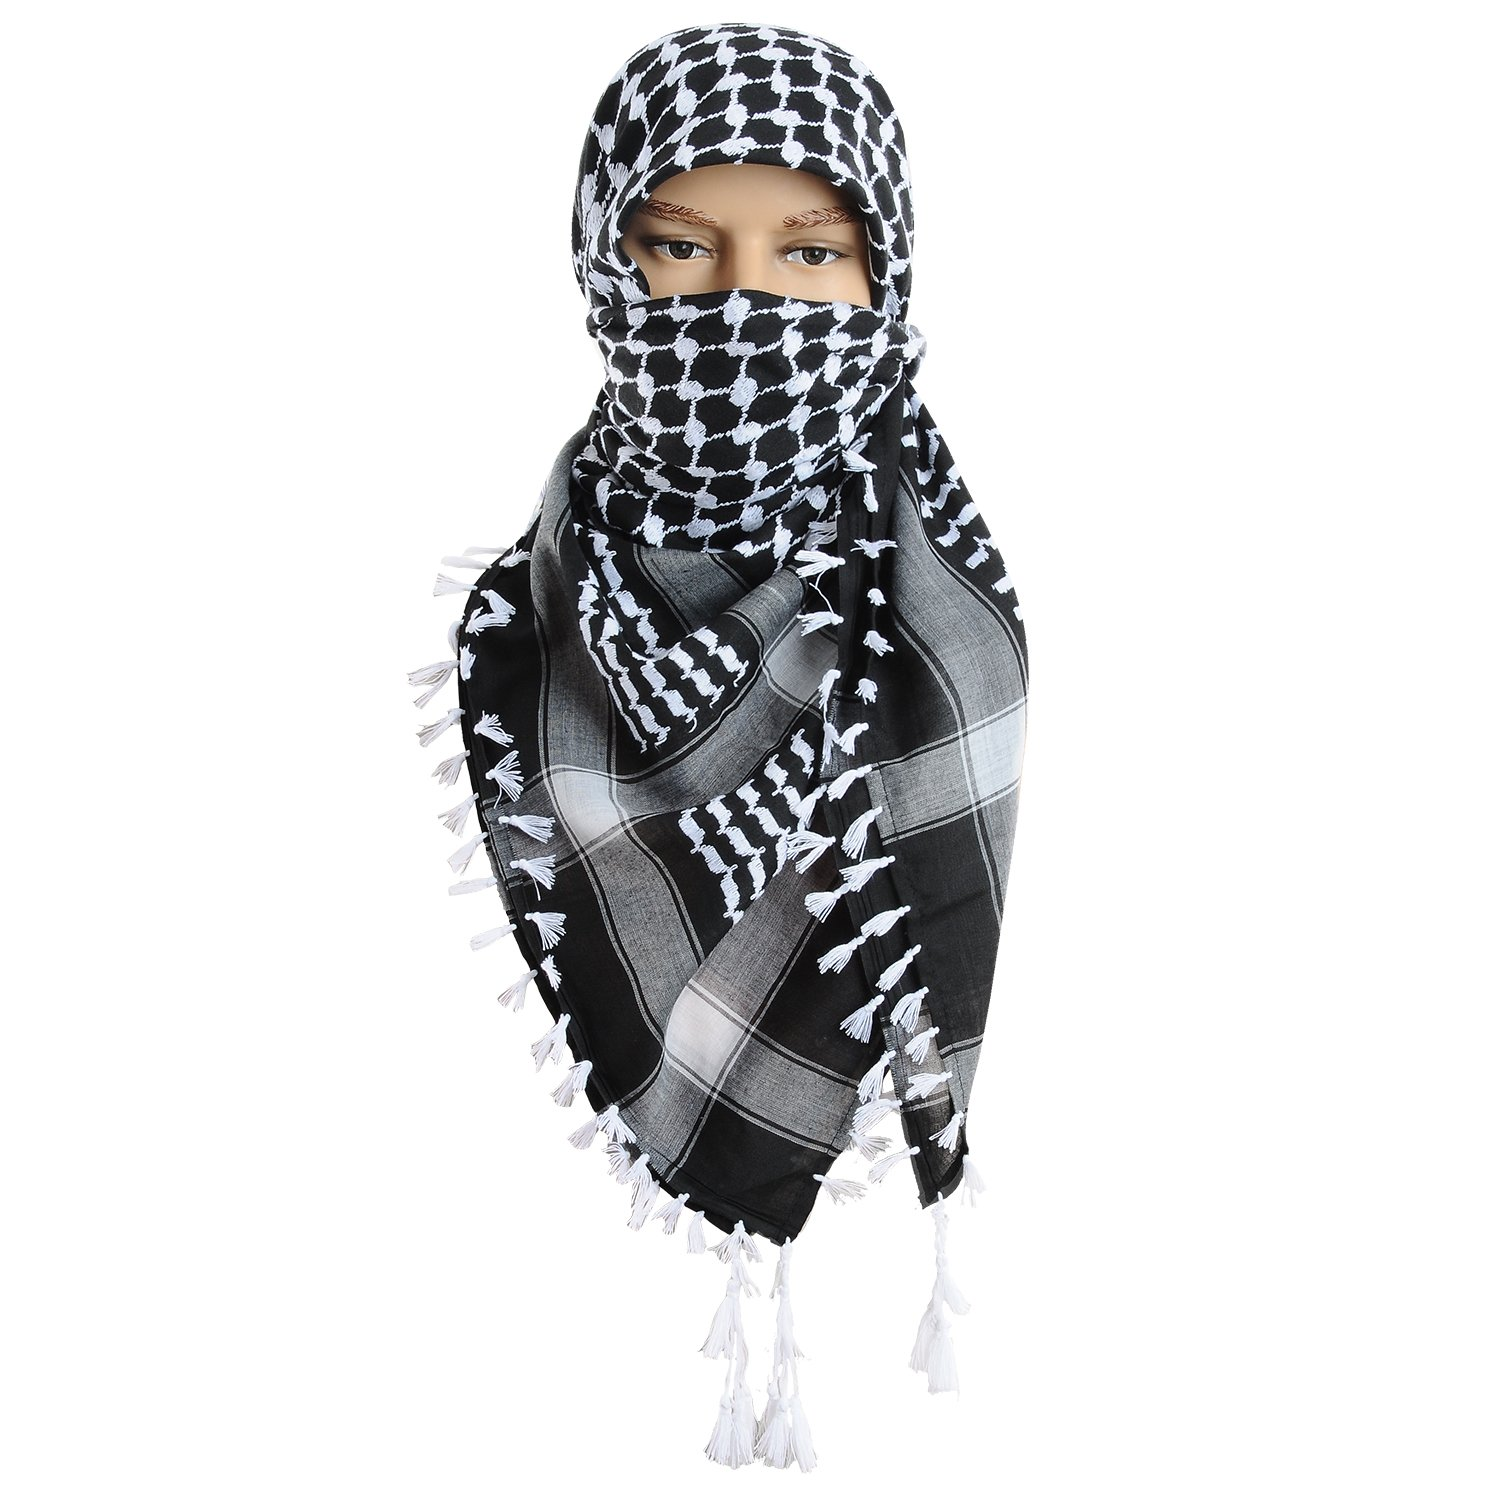 Micoop Large Size Premium Shemagh Scarf Arab Military Tactical Desert Scarf Wrap(48 by 48 inches) (Black White)